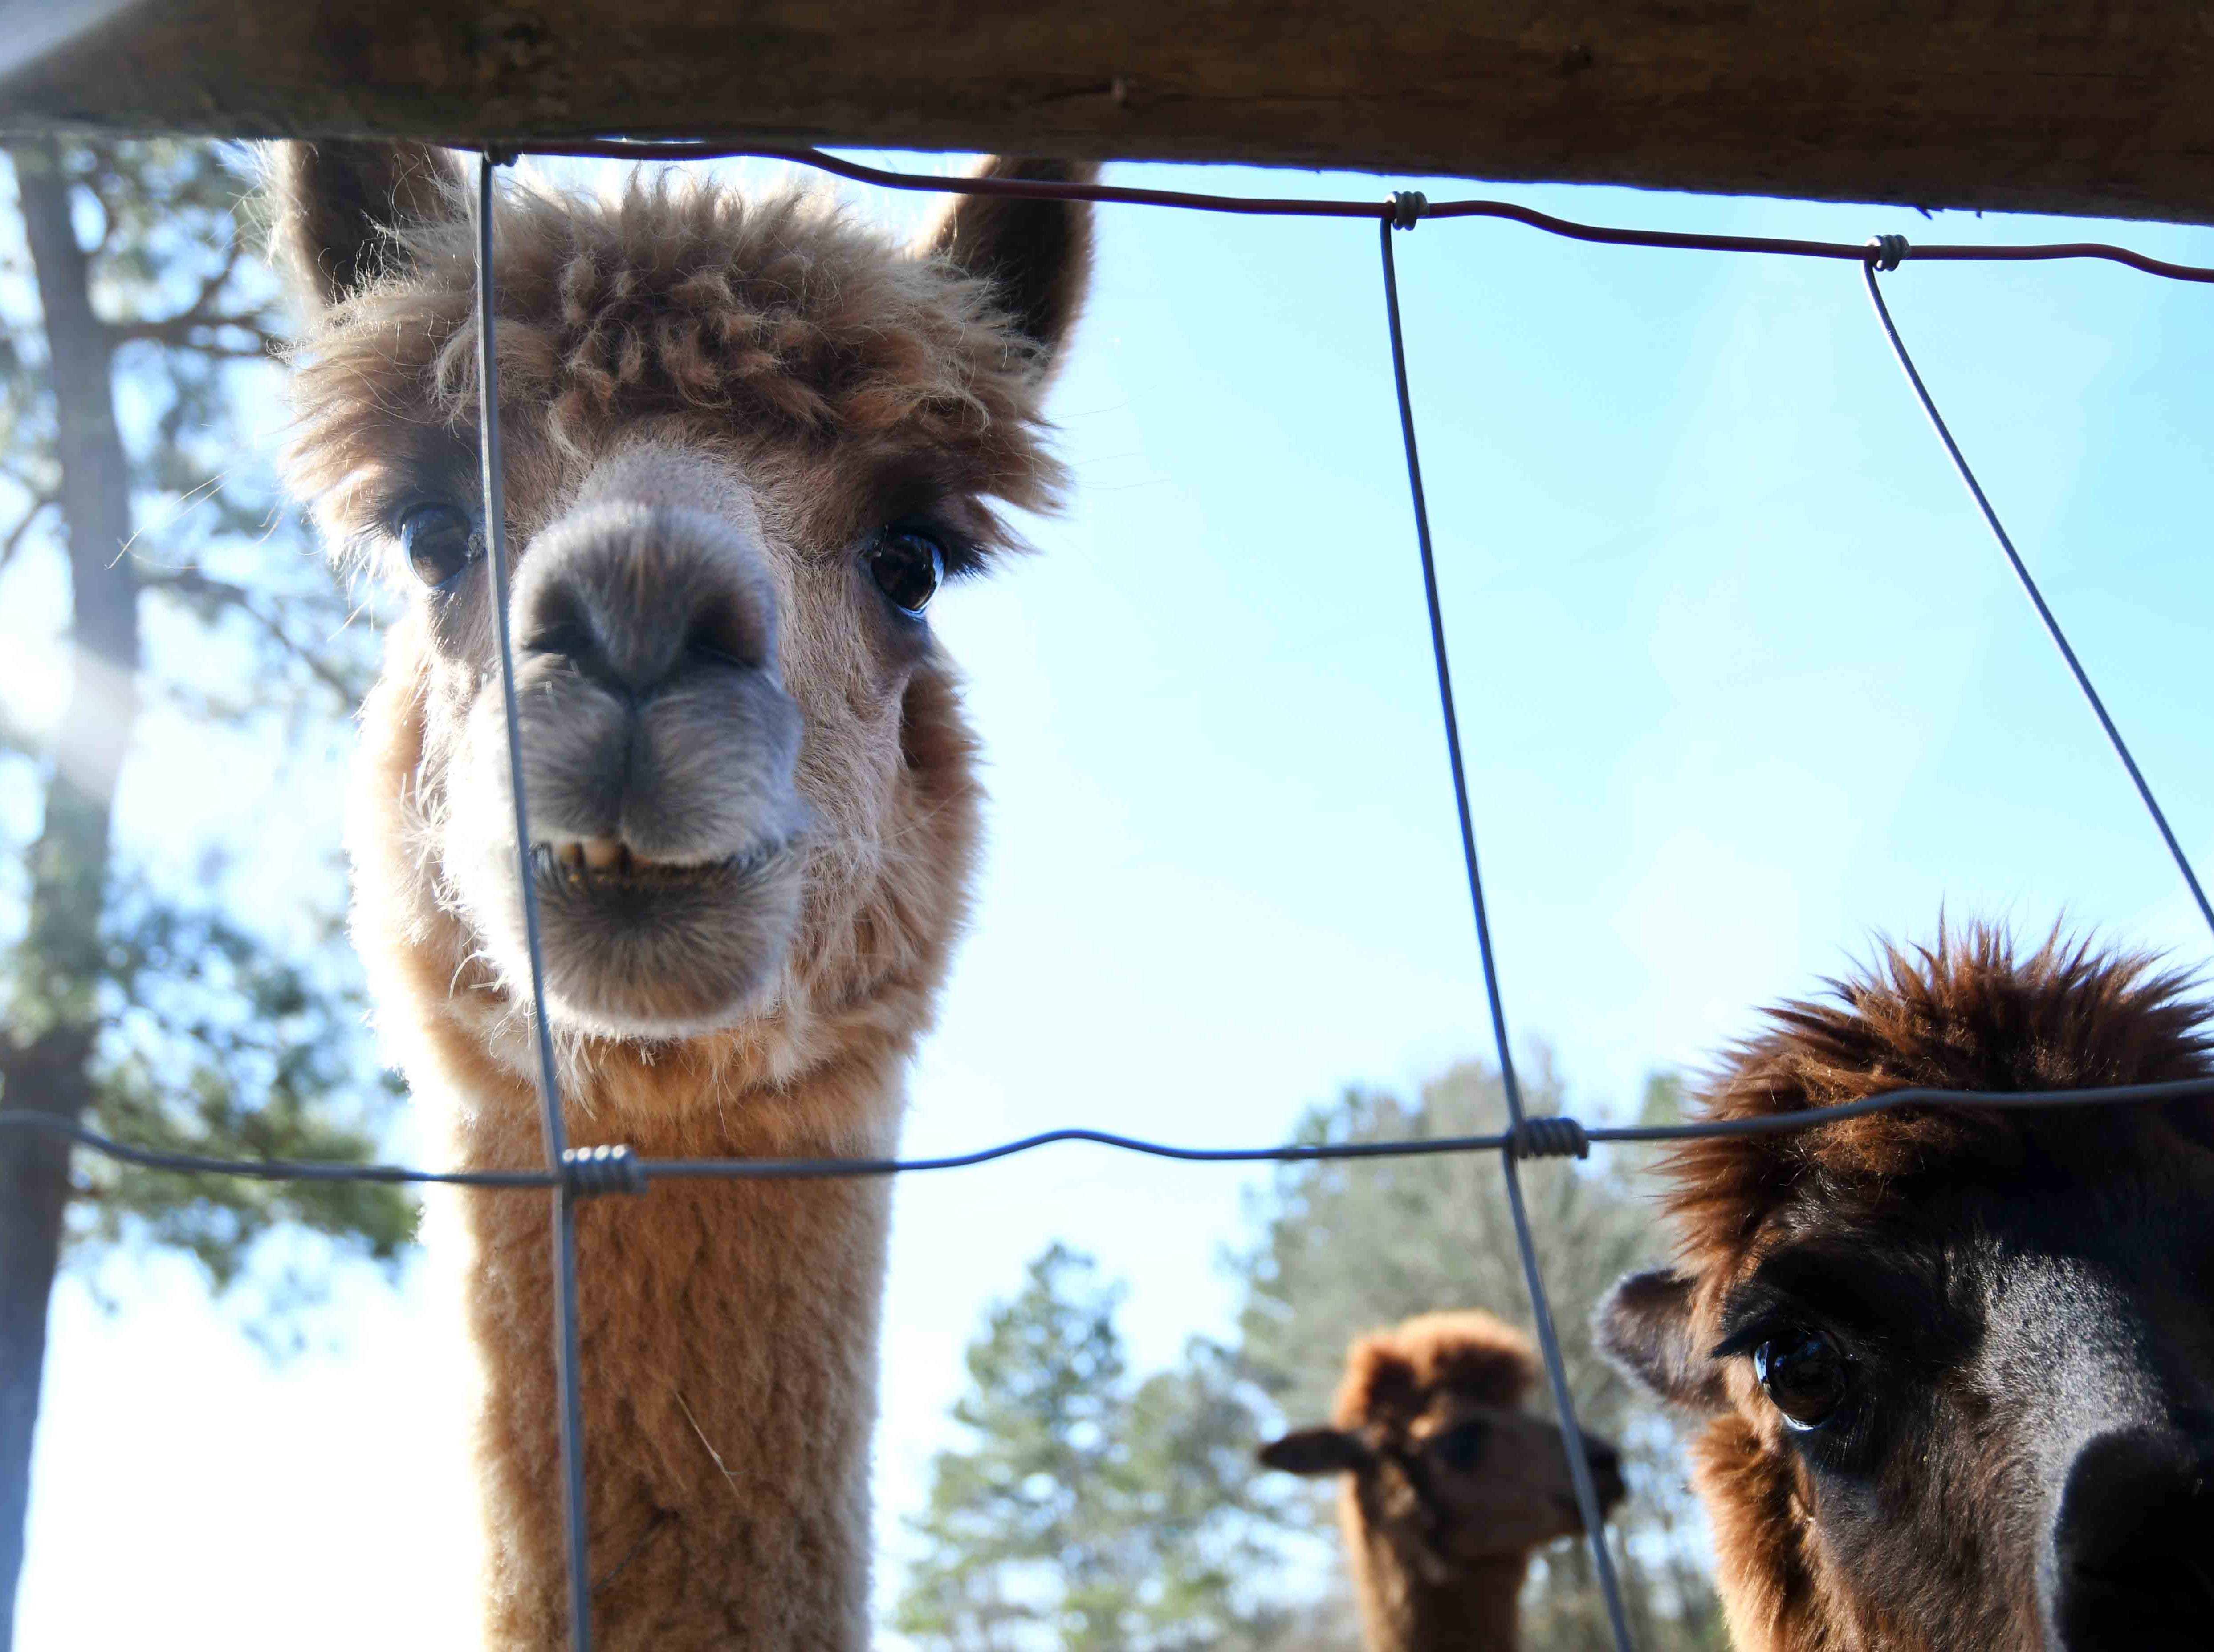 Alpacas are smaller than llamas, but both are in the same family as camels.